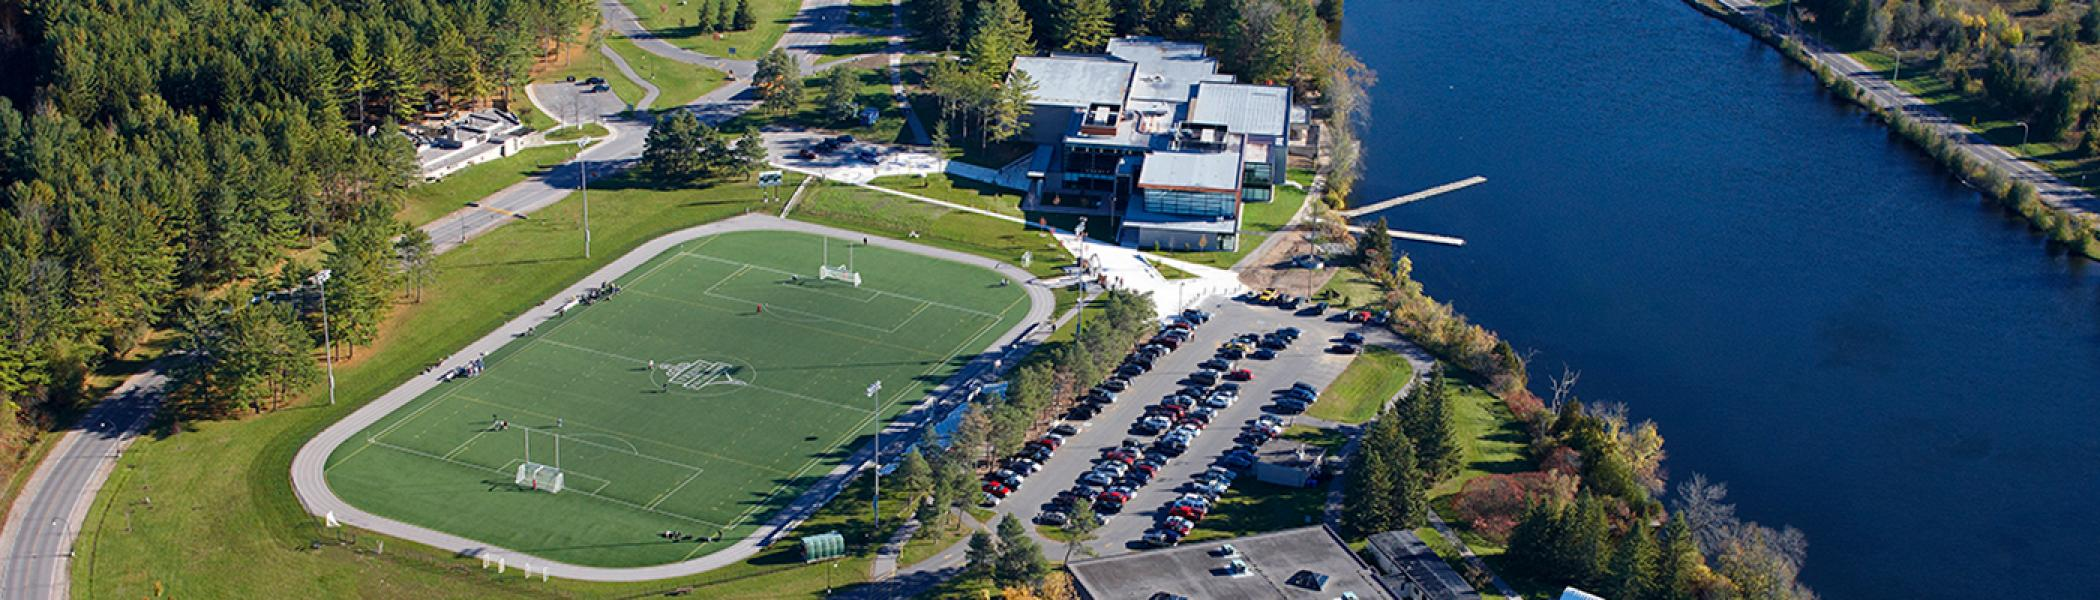 Aerial view of the Athletics Centre and Justin Chiu stadium